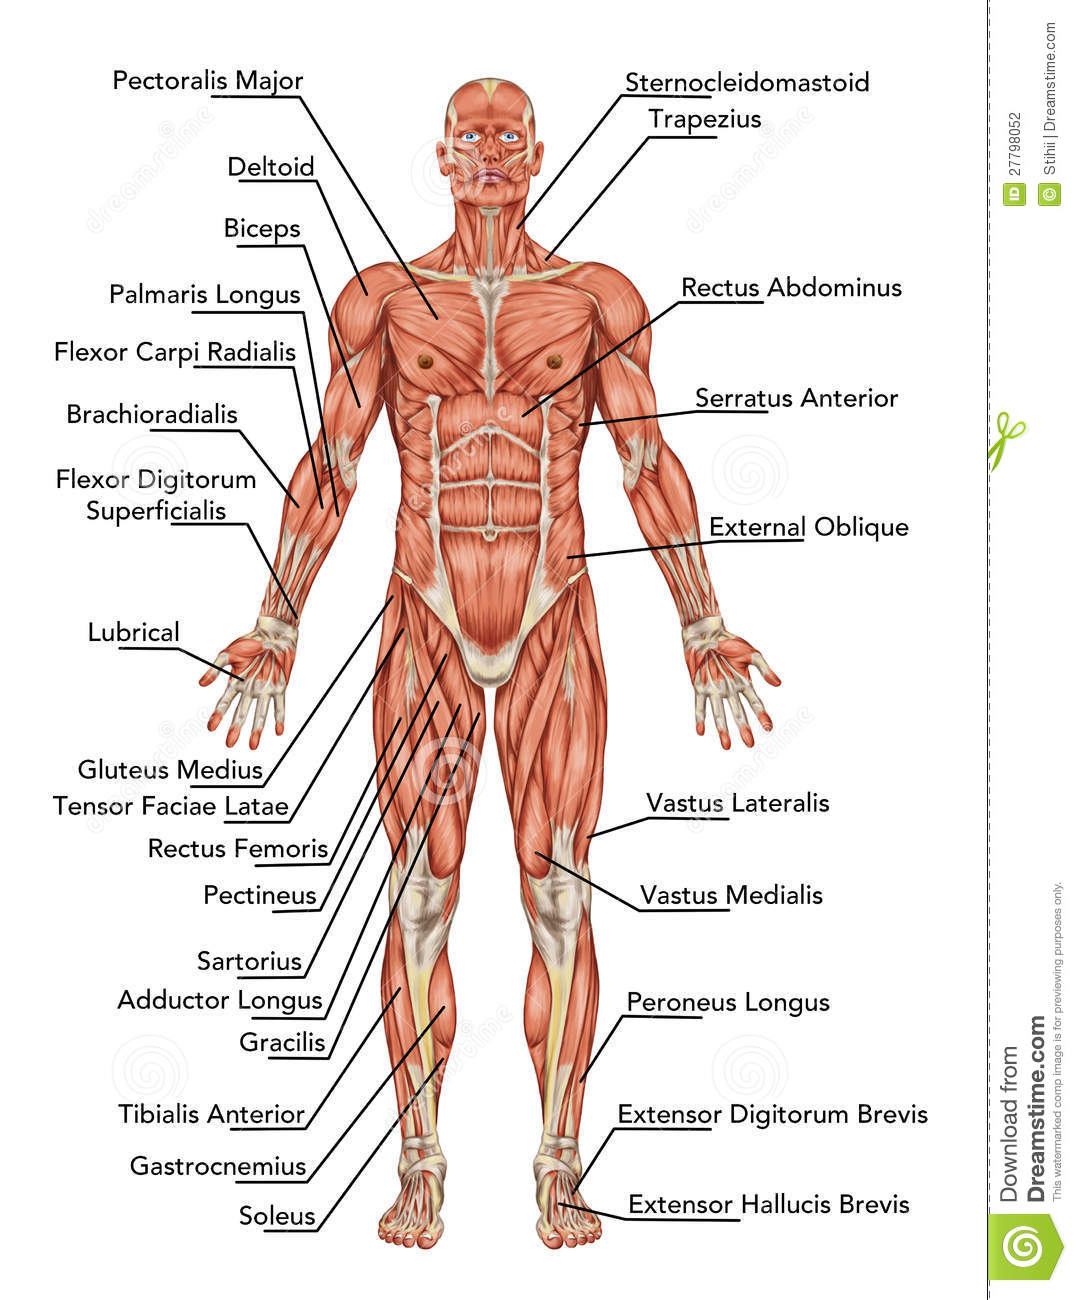 Skeletal system organs and functions